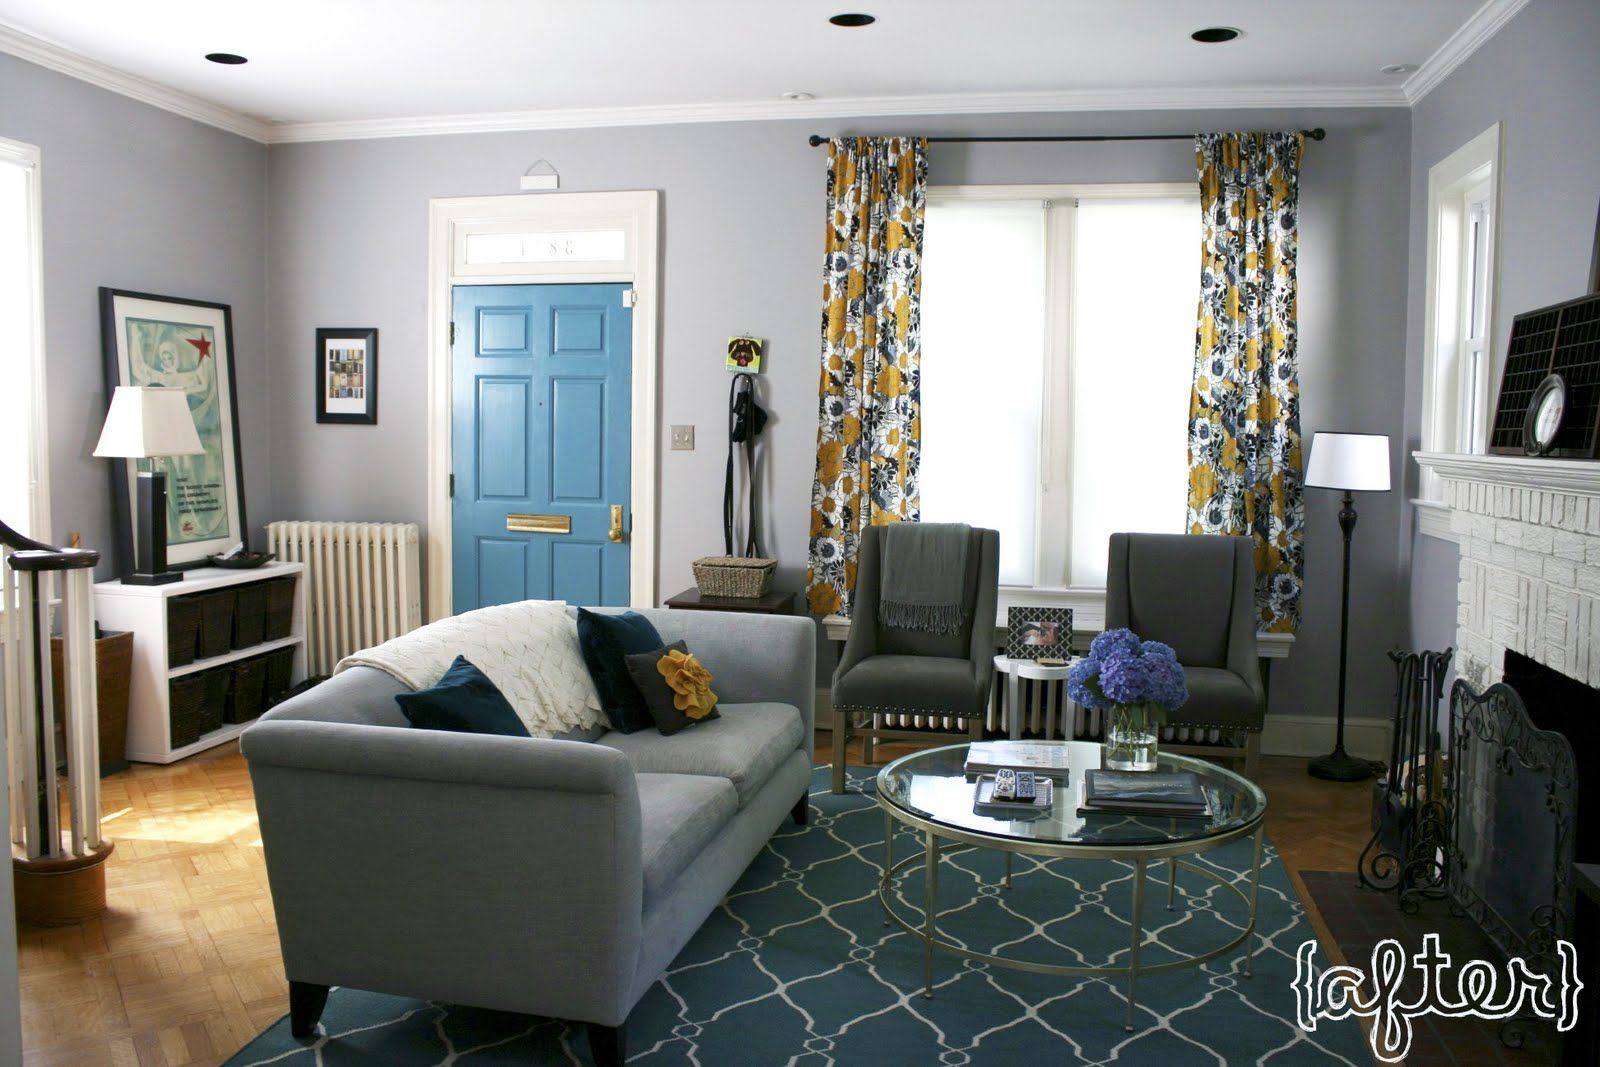 Living Room Carpets Rugs Painting Gray Teal & Gold Living Room With Teal Trellis Rug Gray .